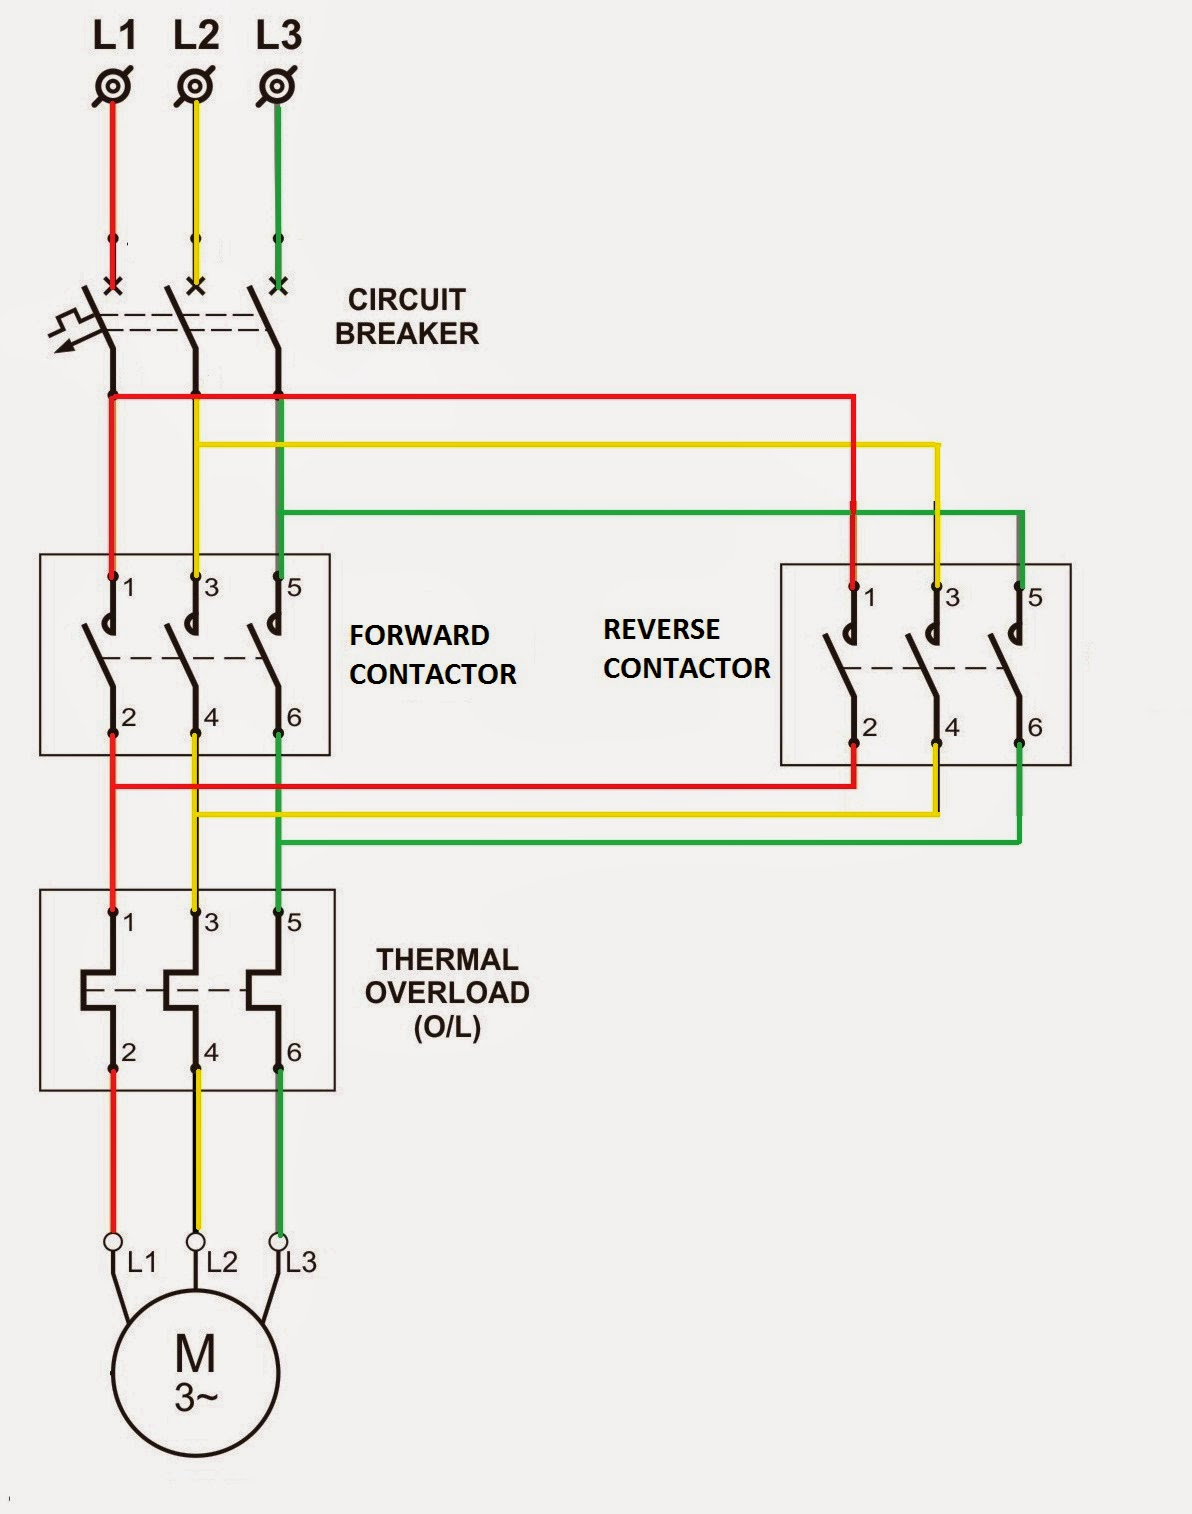 REVERSE+FORWARD wiring diagram for reversing contactor the wiring diagram reversing starter wiring diagram at crackthecode.co